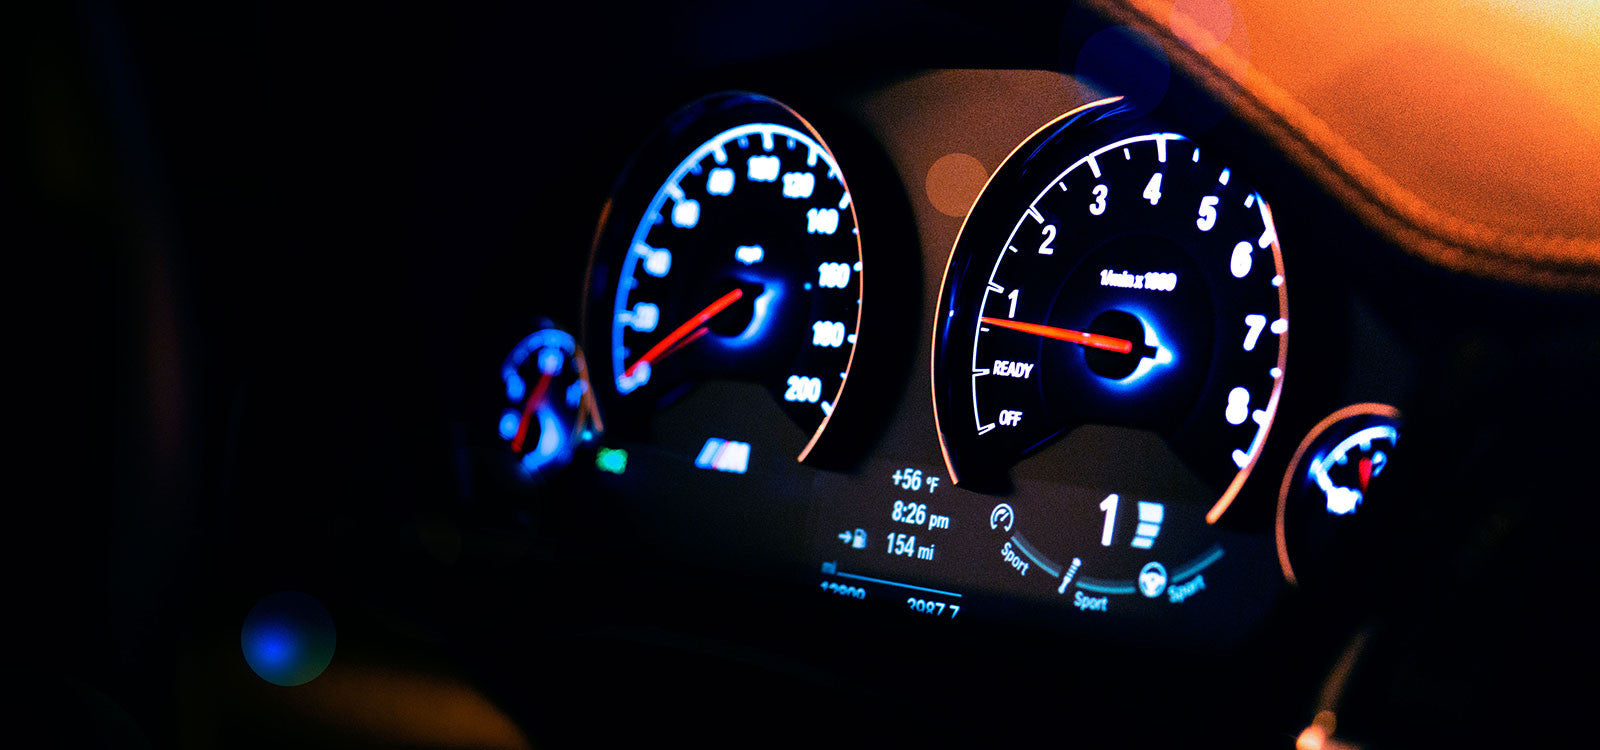 BMW M3 Dash with JB4 Tune